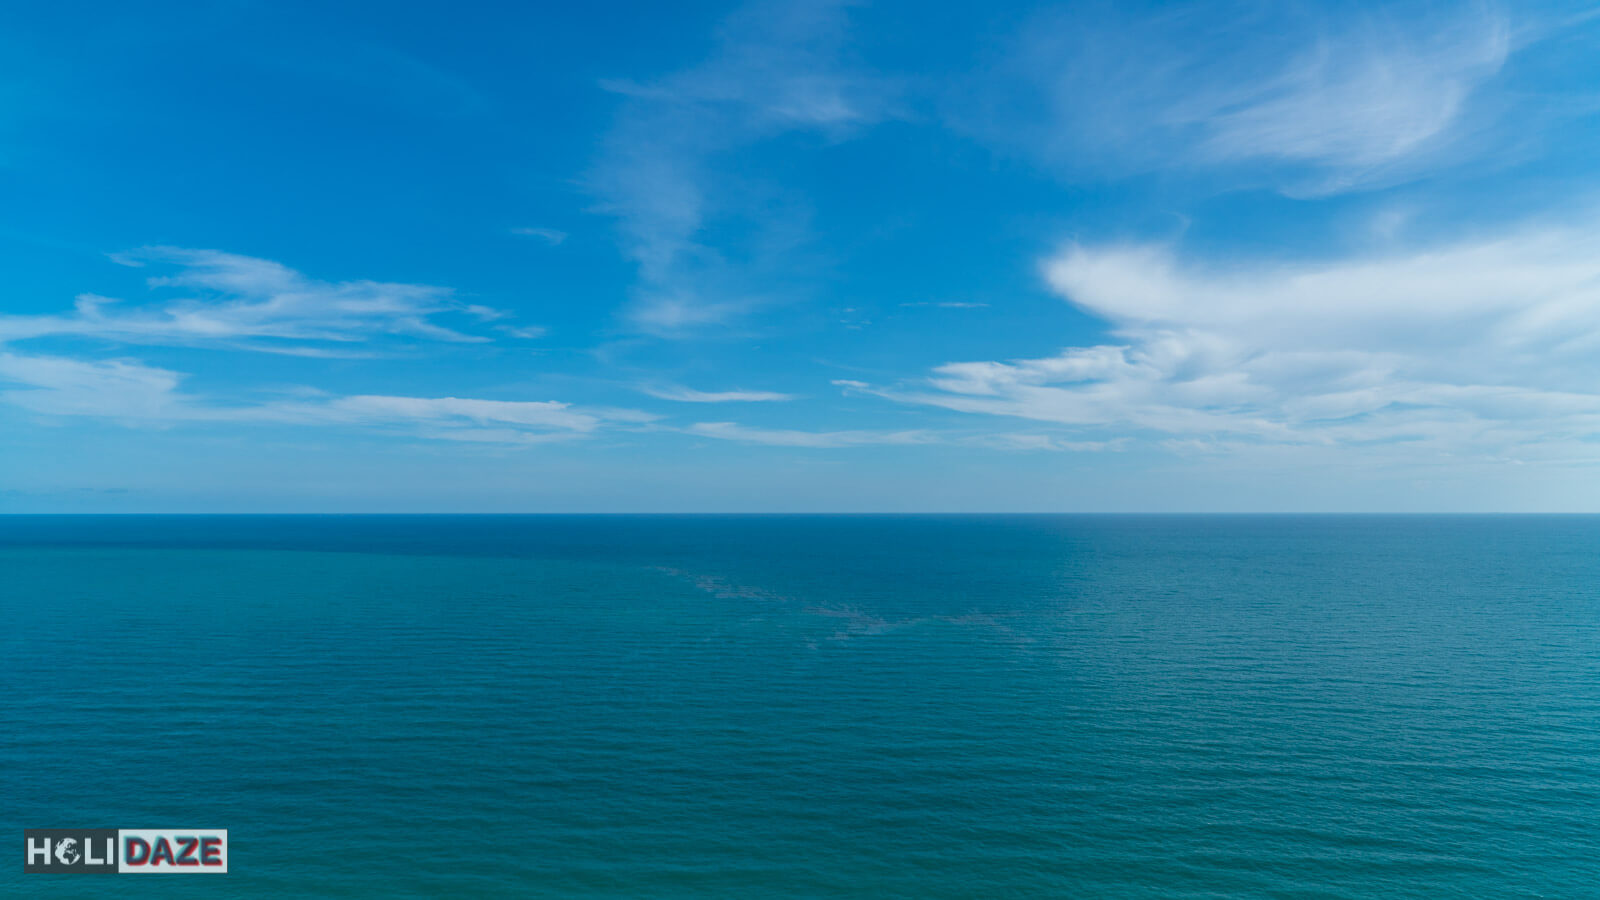 Nomad no more: my view of the Gulf of Thailand